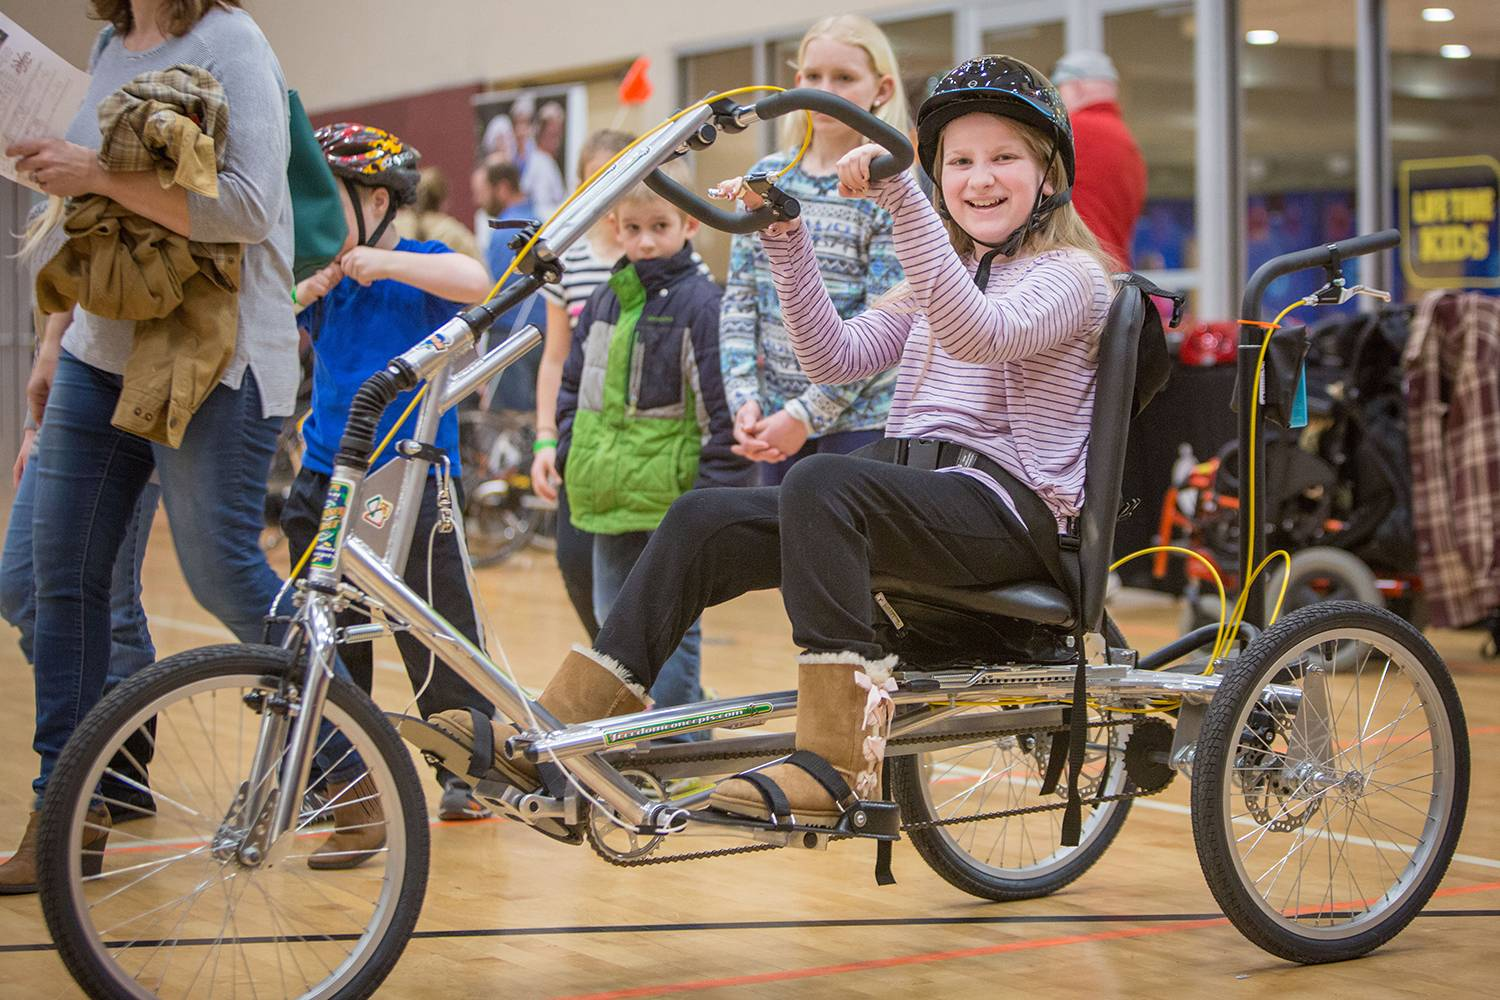 Kiara tries her first adapted bike at the expo.